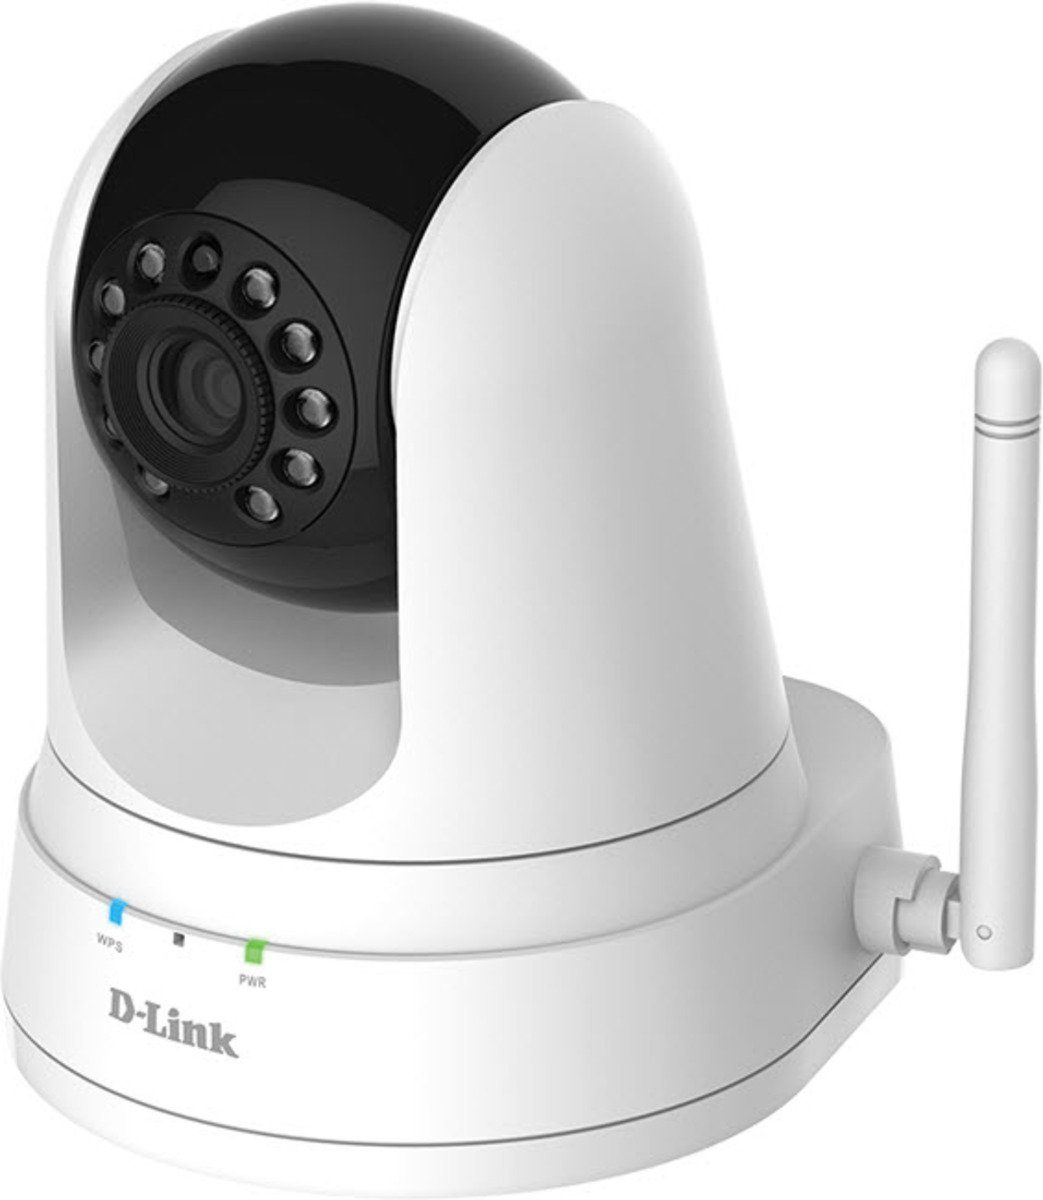 D-Link Ip-Kamera »DCS-5000L/E Wireless N Tag&Nacht Pan&Tilt Camera«